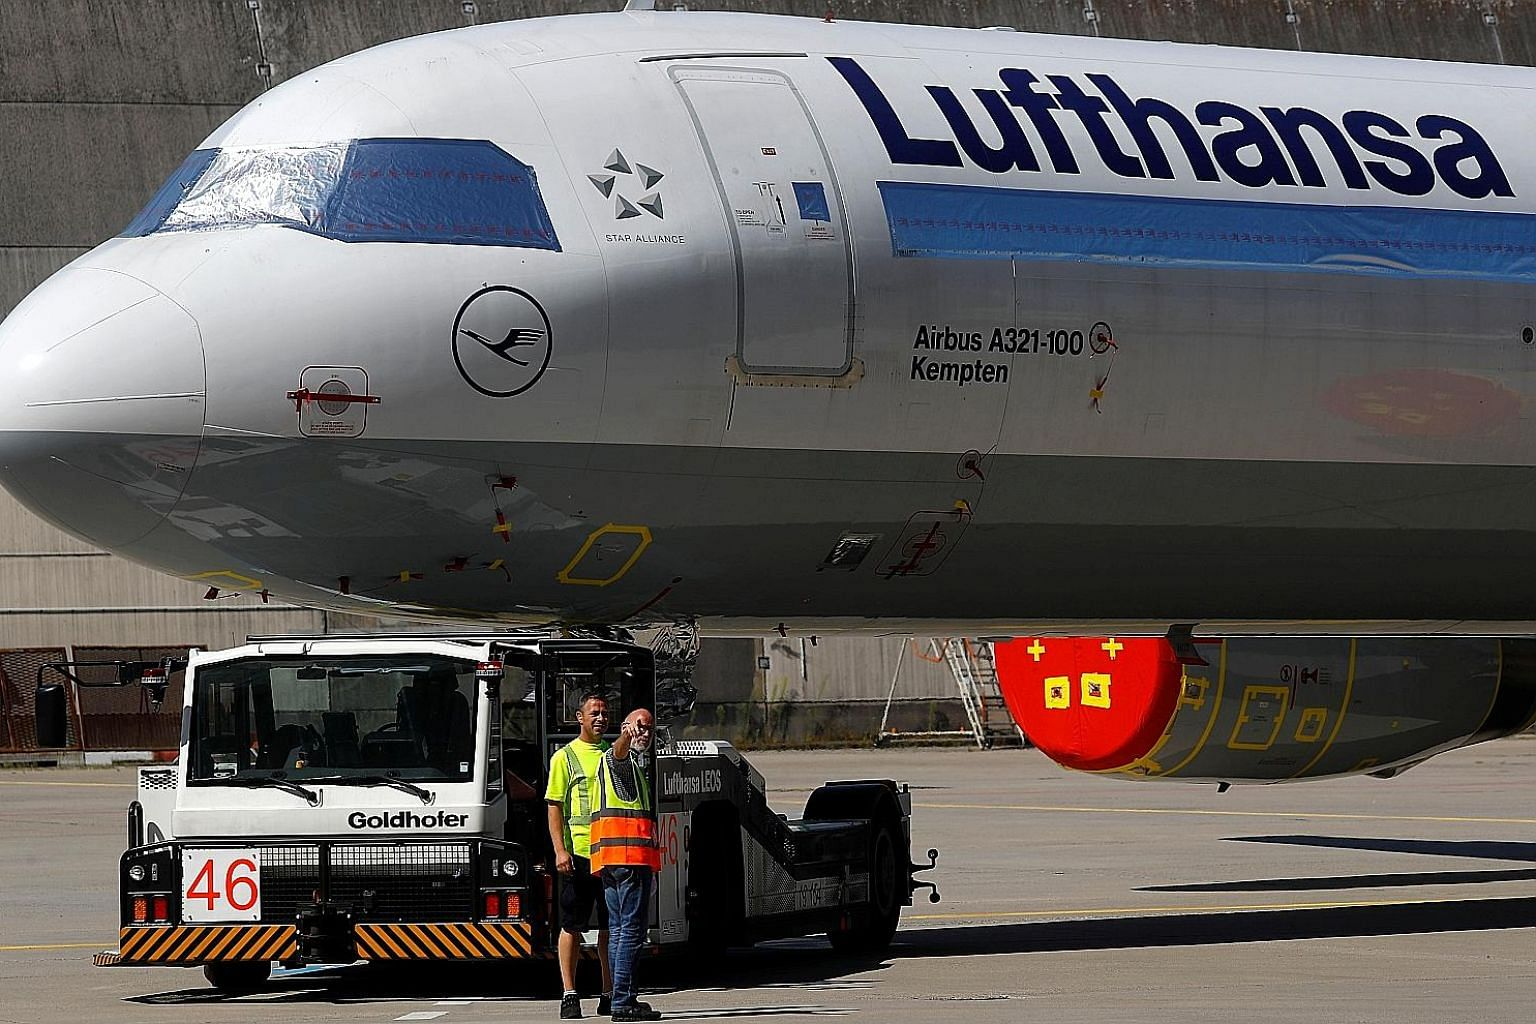 Germany's Lufthansa is among the airlines planning to downsize their staff as global air travel demand remains weak amid the coronavirus pandemic.